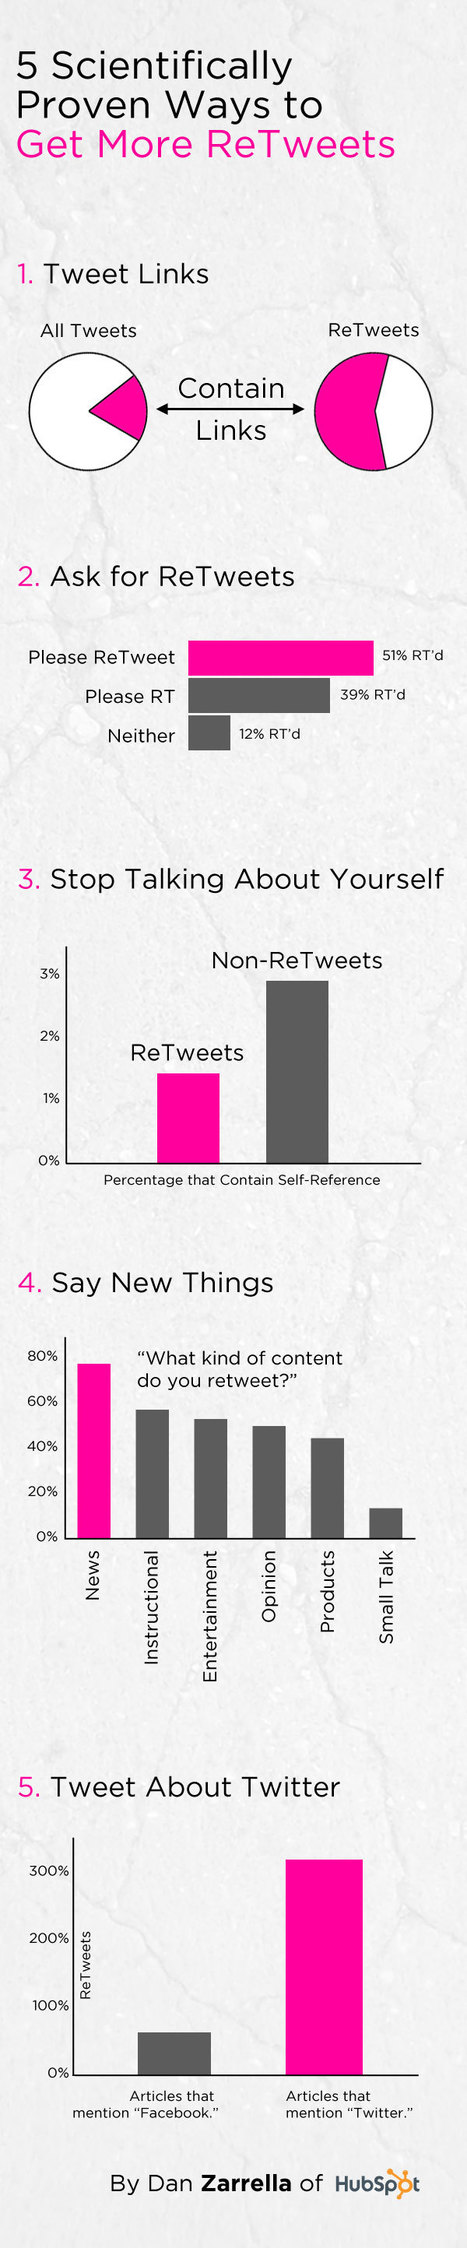 [Infographic] 5 Scientifically Proven Ways to Get More ReTweets | Tech fun on the fly | Scoop.it